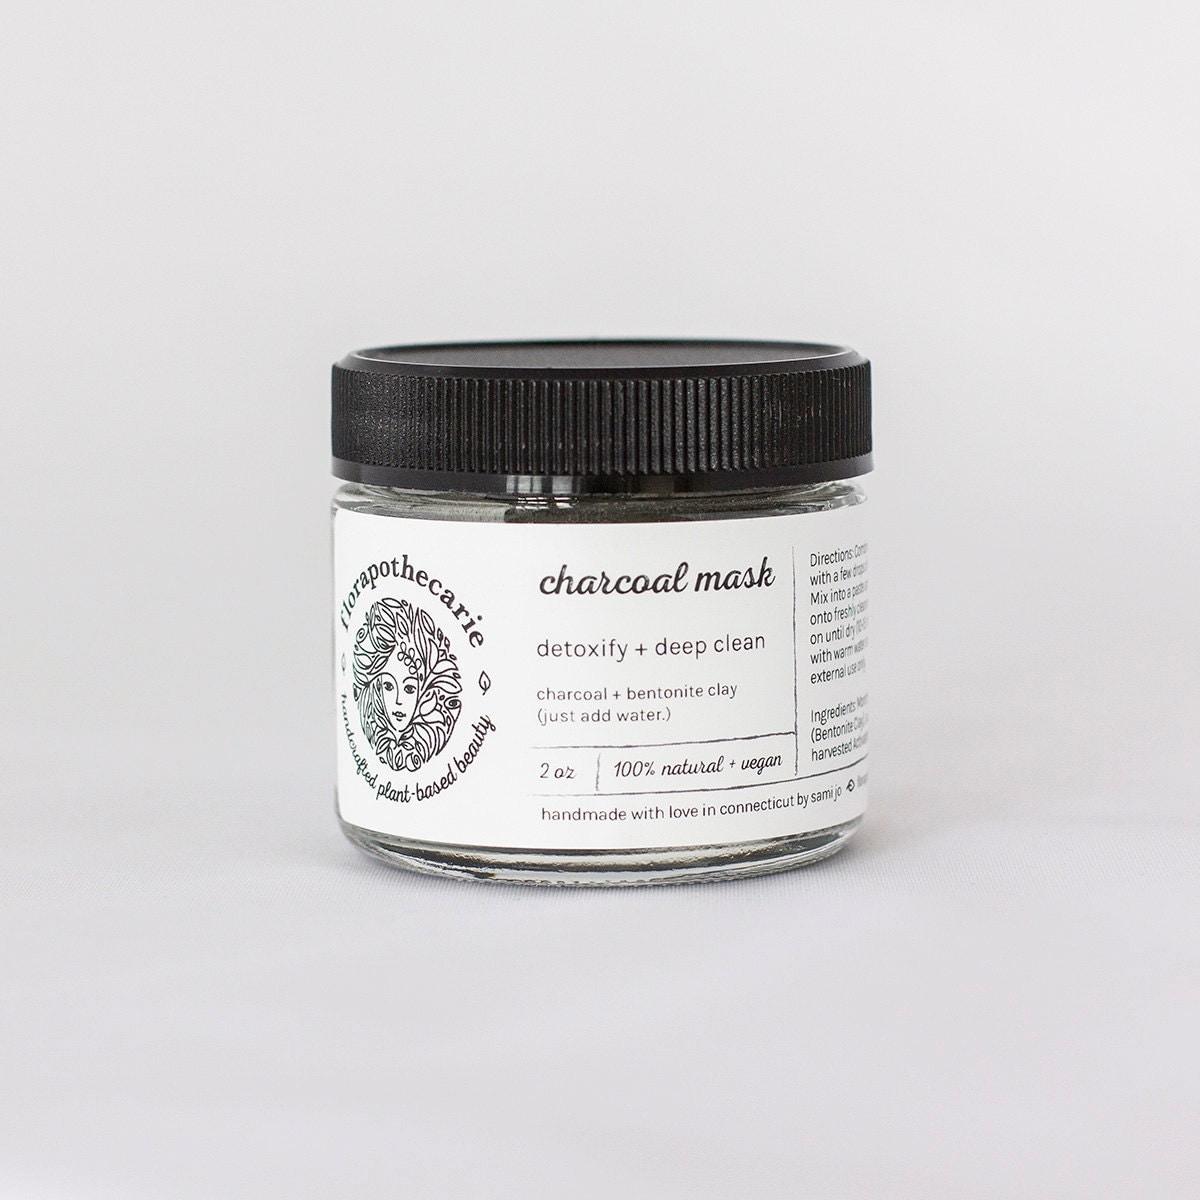 Detox Your Skin With This Diy Charcoal Mask: Charcoal Facial Mask All-natural Detoxify Cleanse